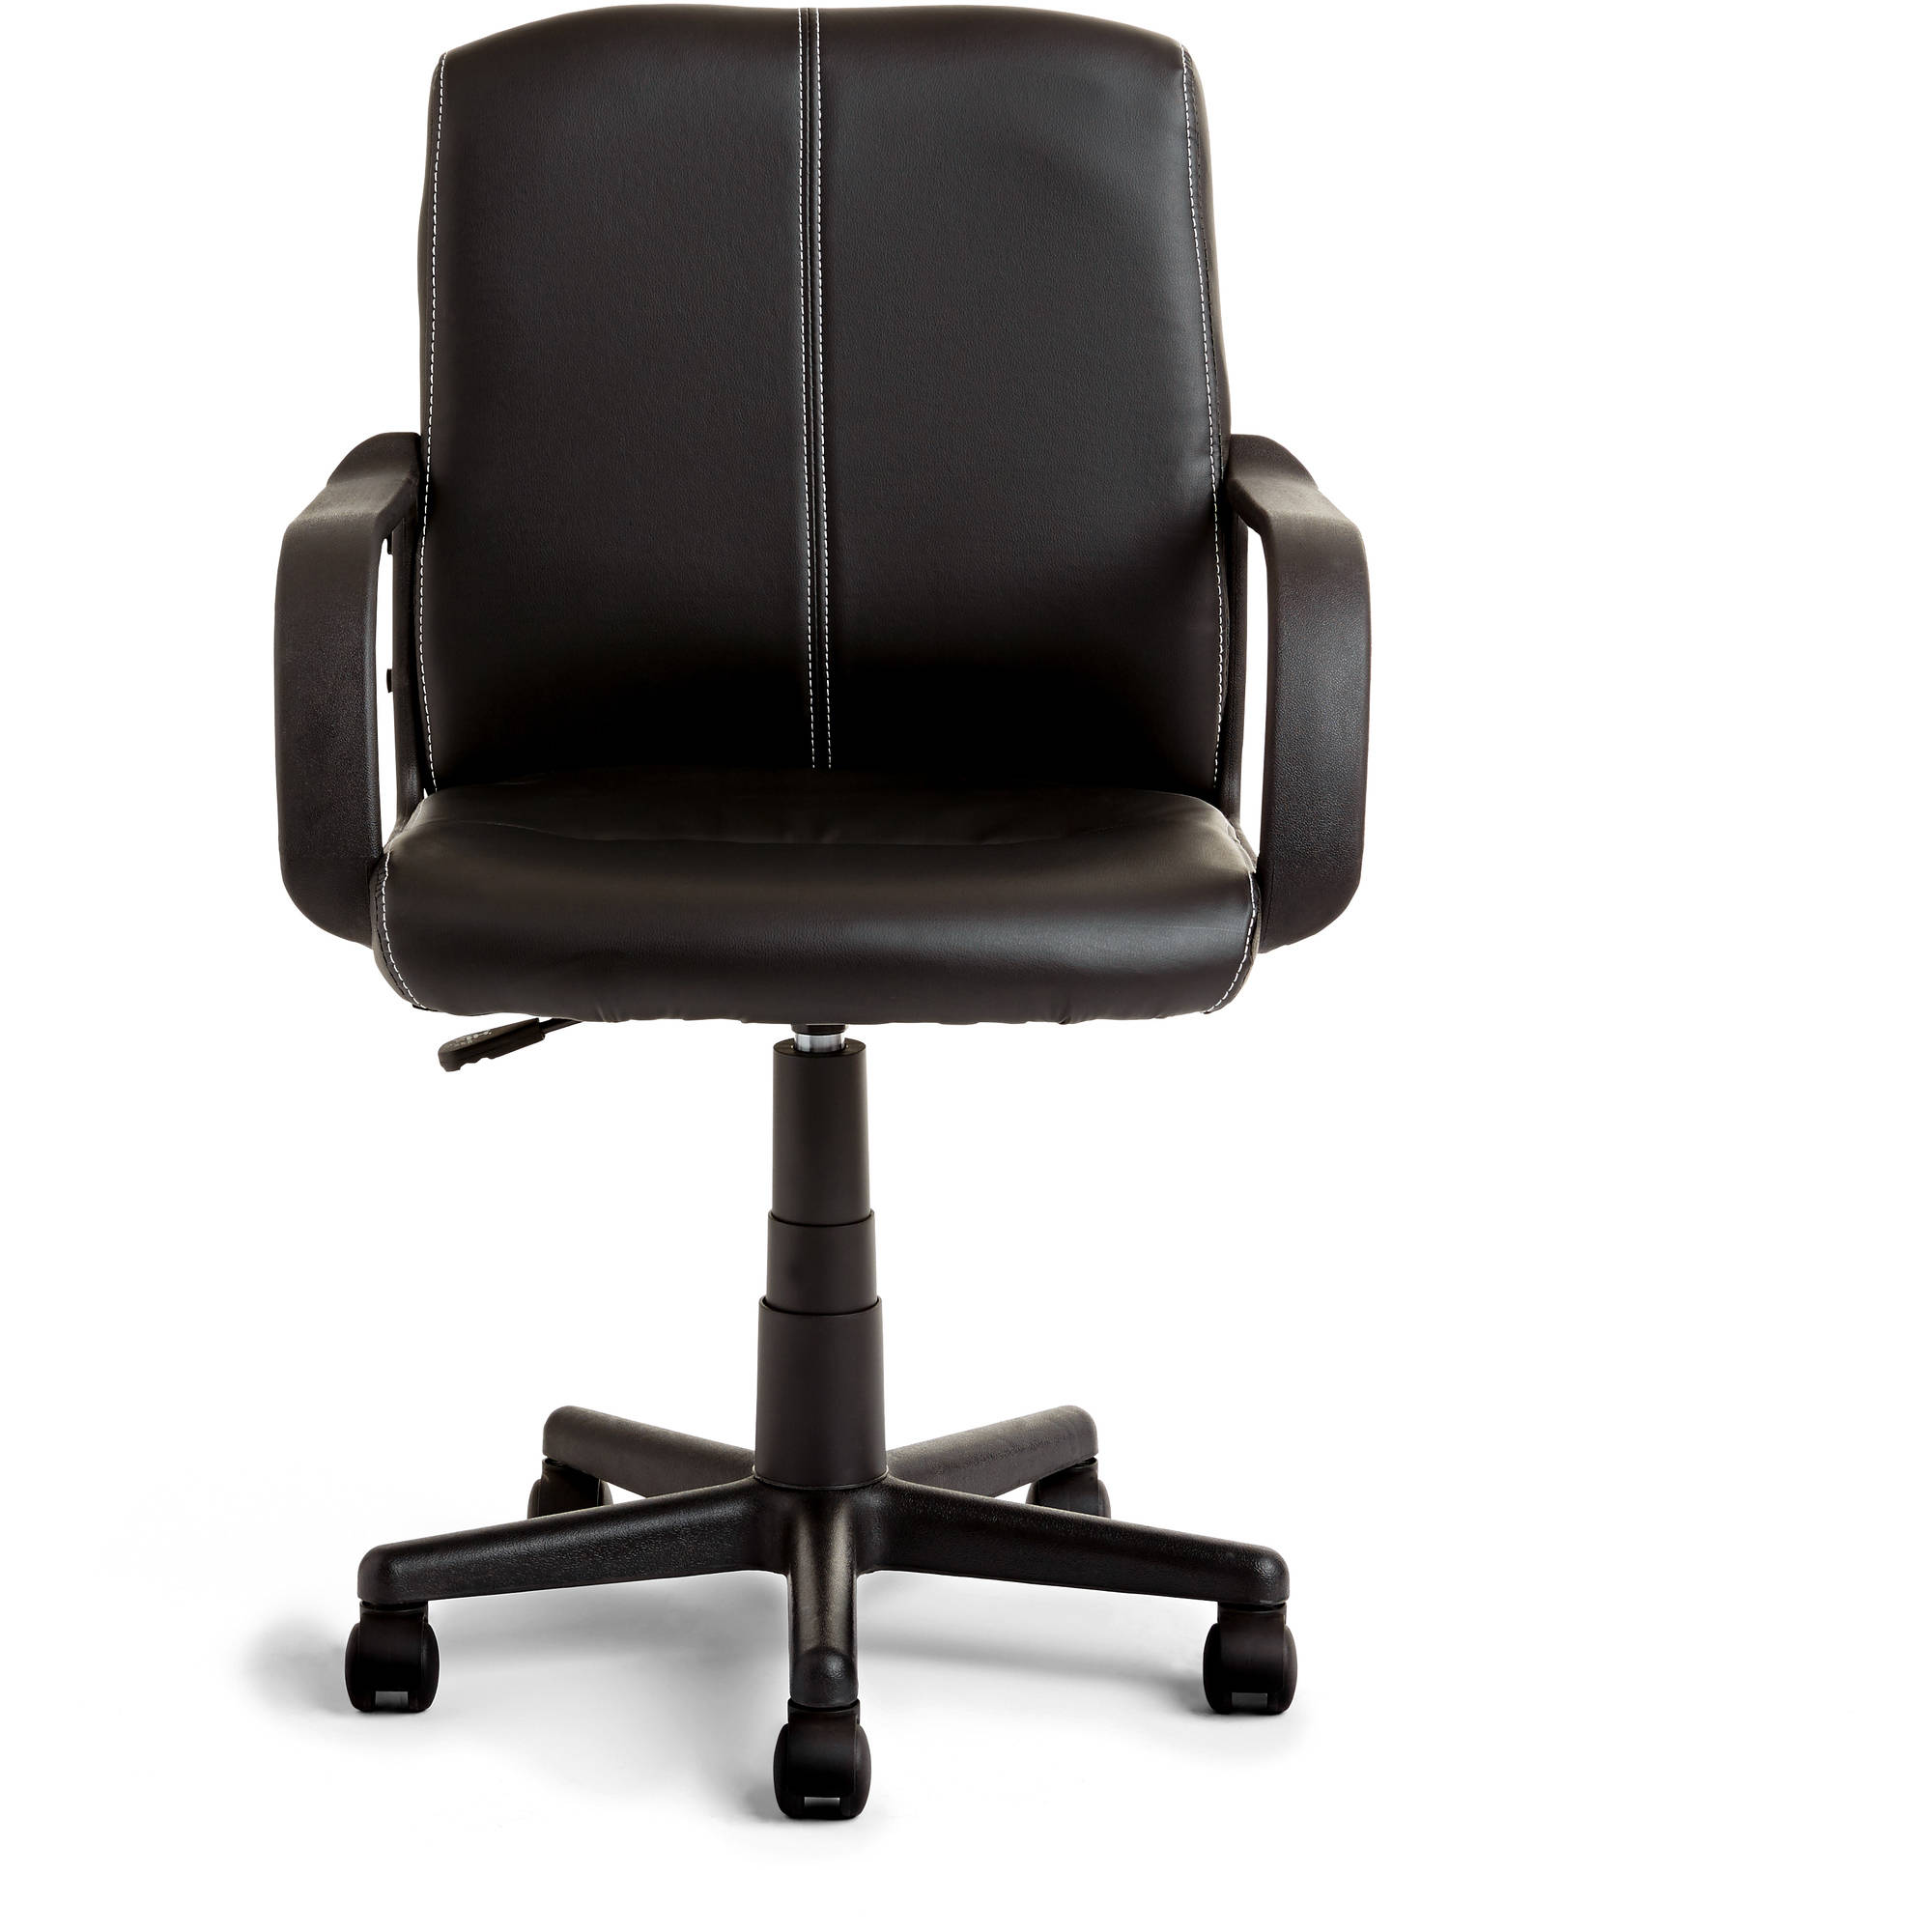 mainstays tufted leather mid-back office chair, multiple colors